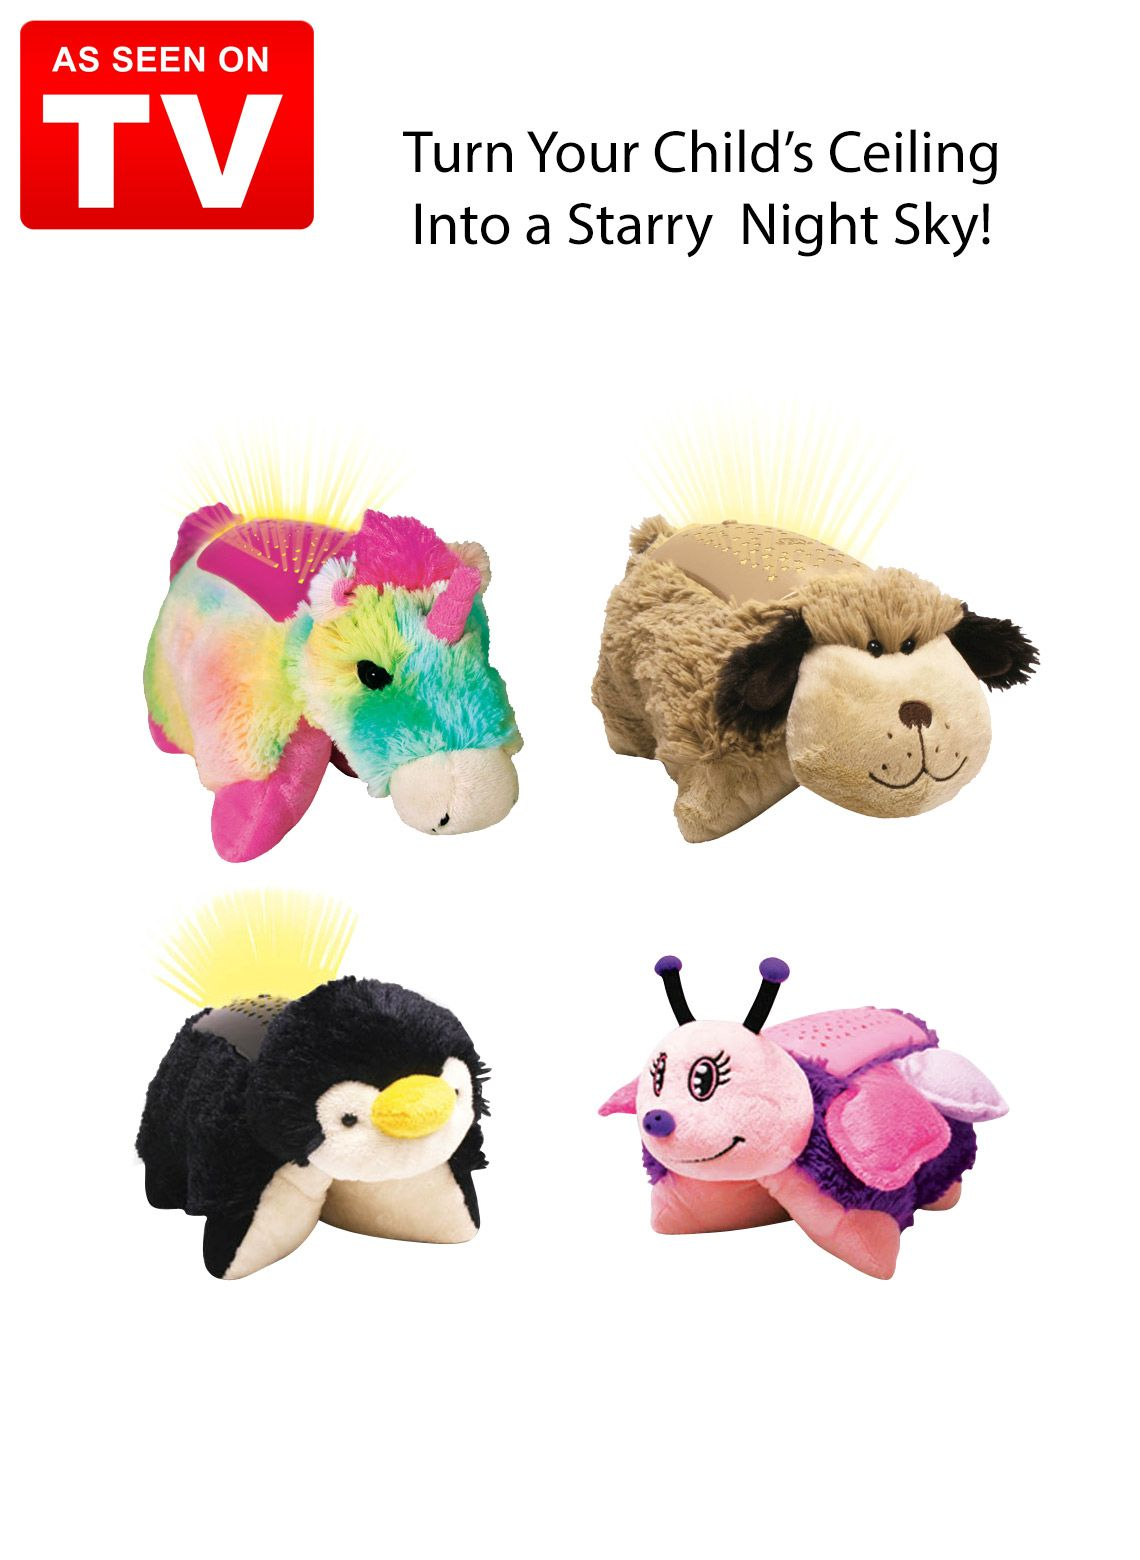 Dream Lites Pillow Pets As Seen On Tv I Want The Dog One Animal Pillows See On Tv Pets